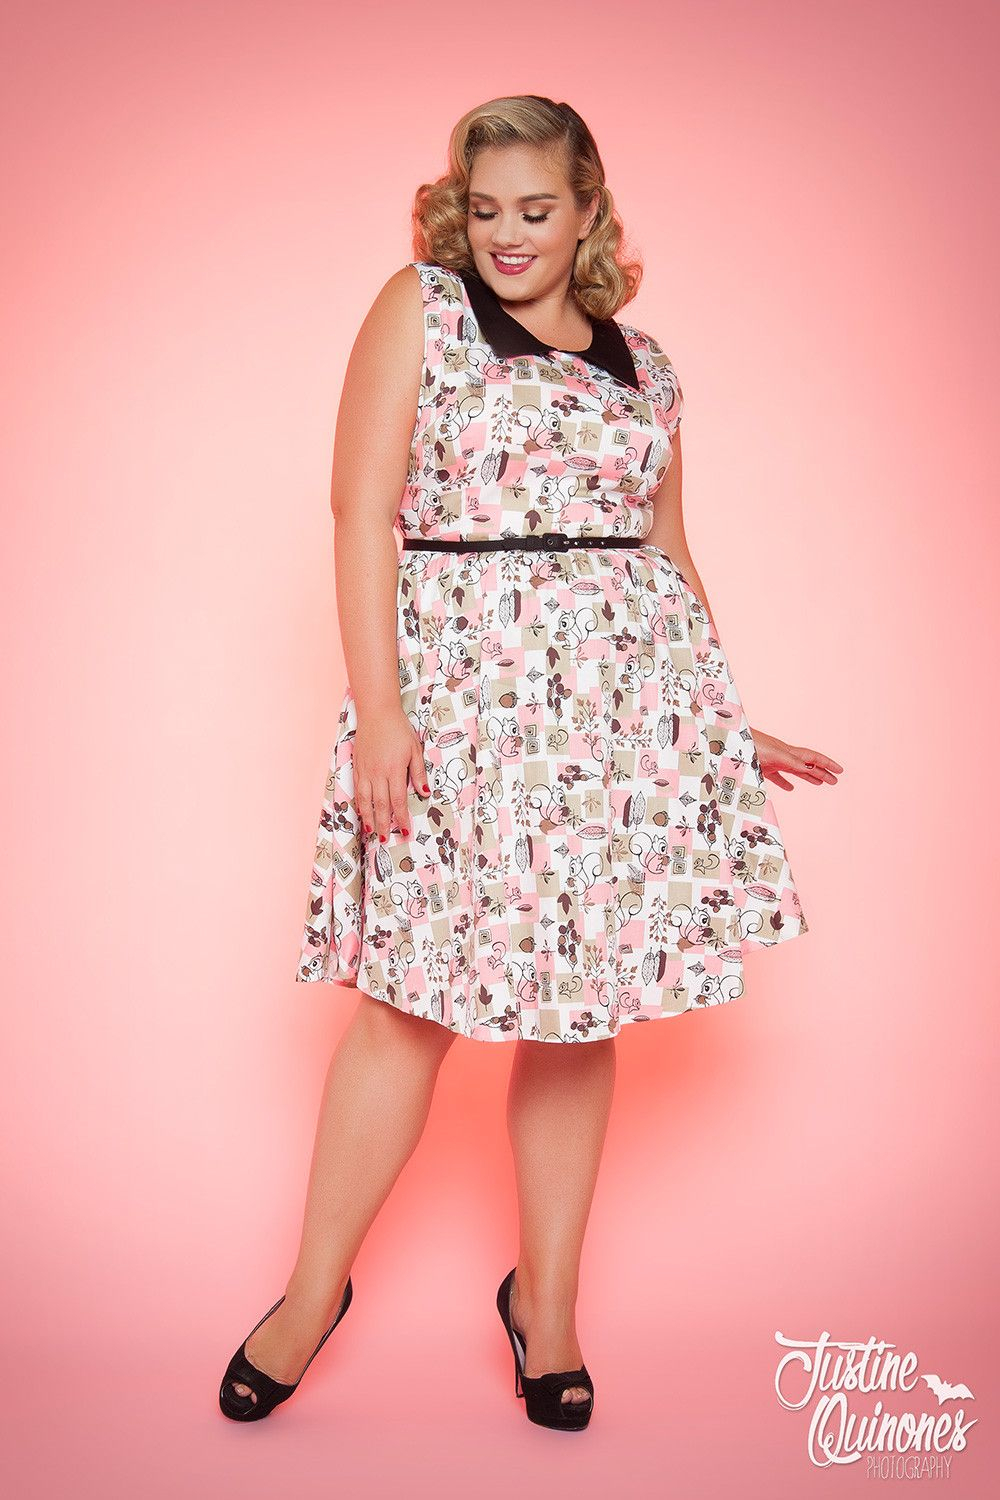 10 Pretty Pin Up Girl Clothing Ideas junebugs dress in squirrel print plus size pinup girl clothing 2020